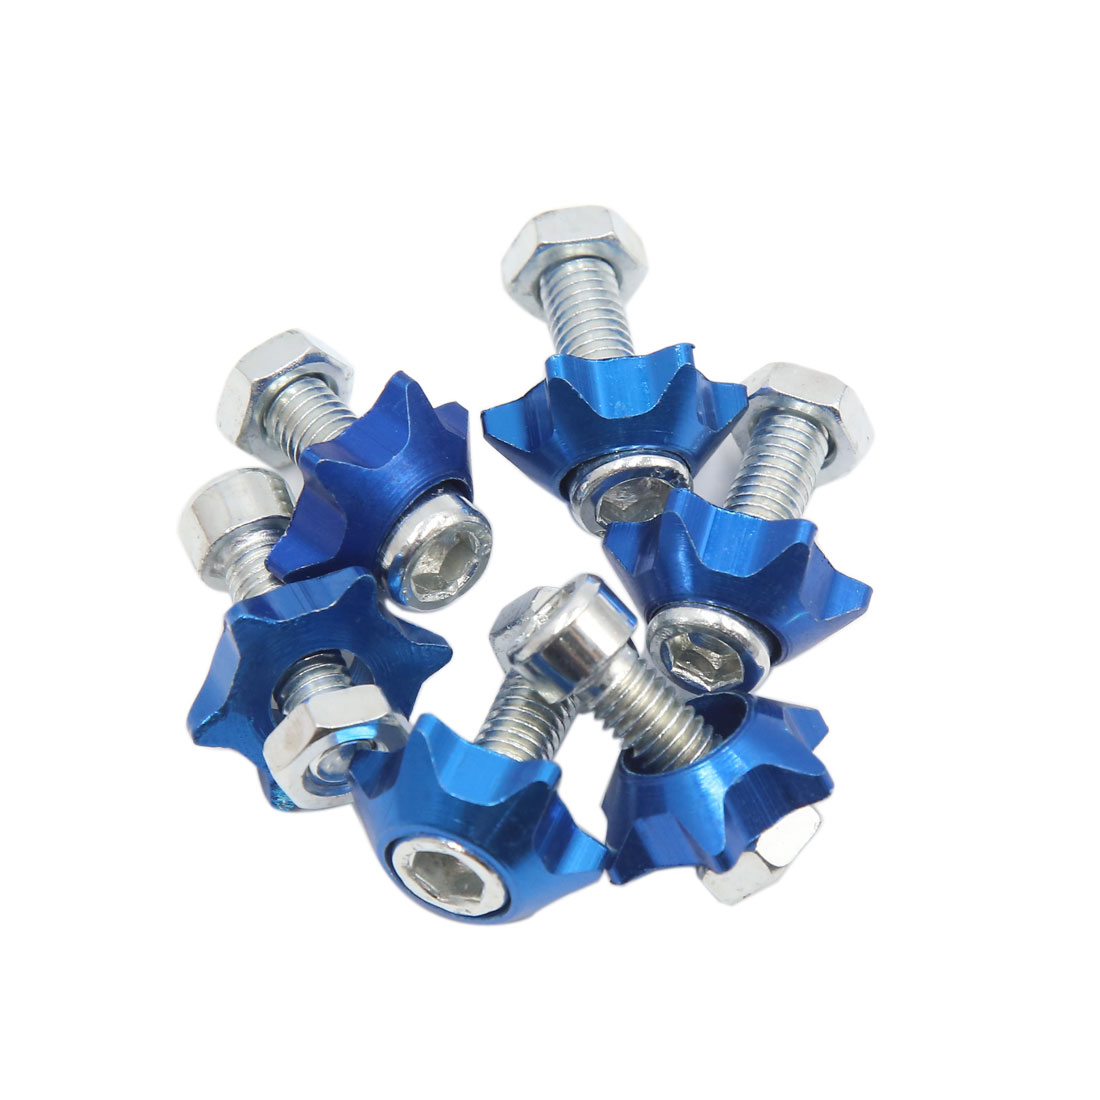 6pcs Blue 6mm Thread Diameter Motorcycle License Plate Frame Screws Bolts Caps